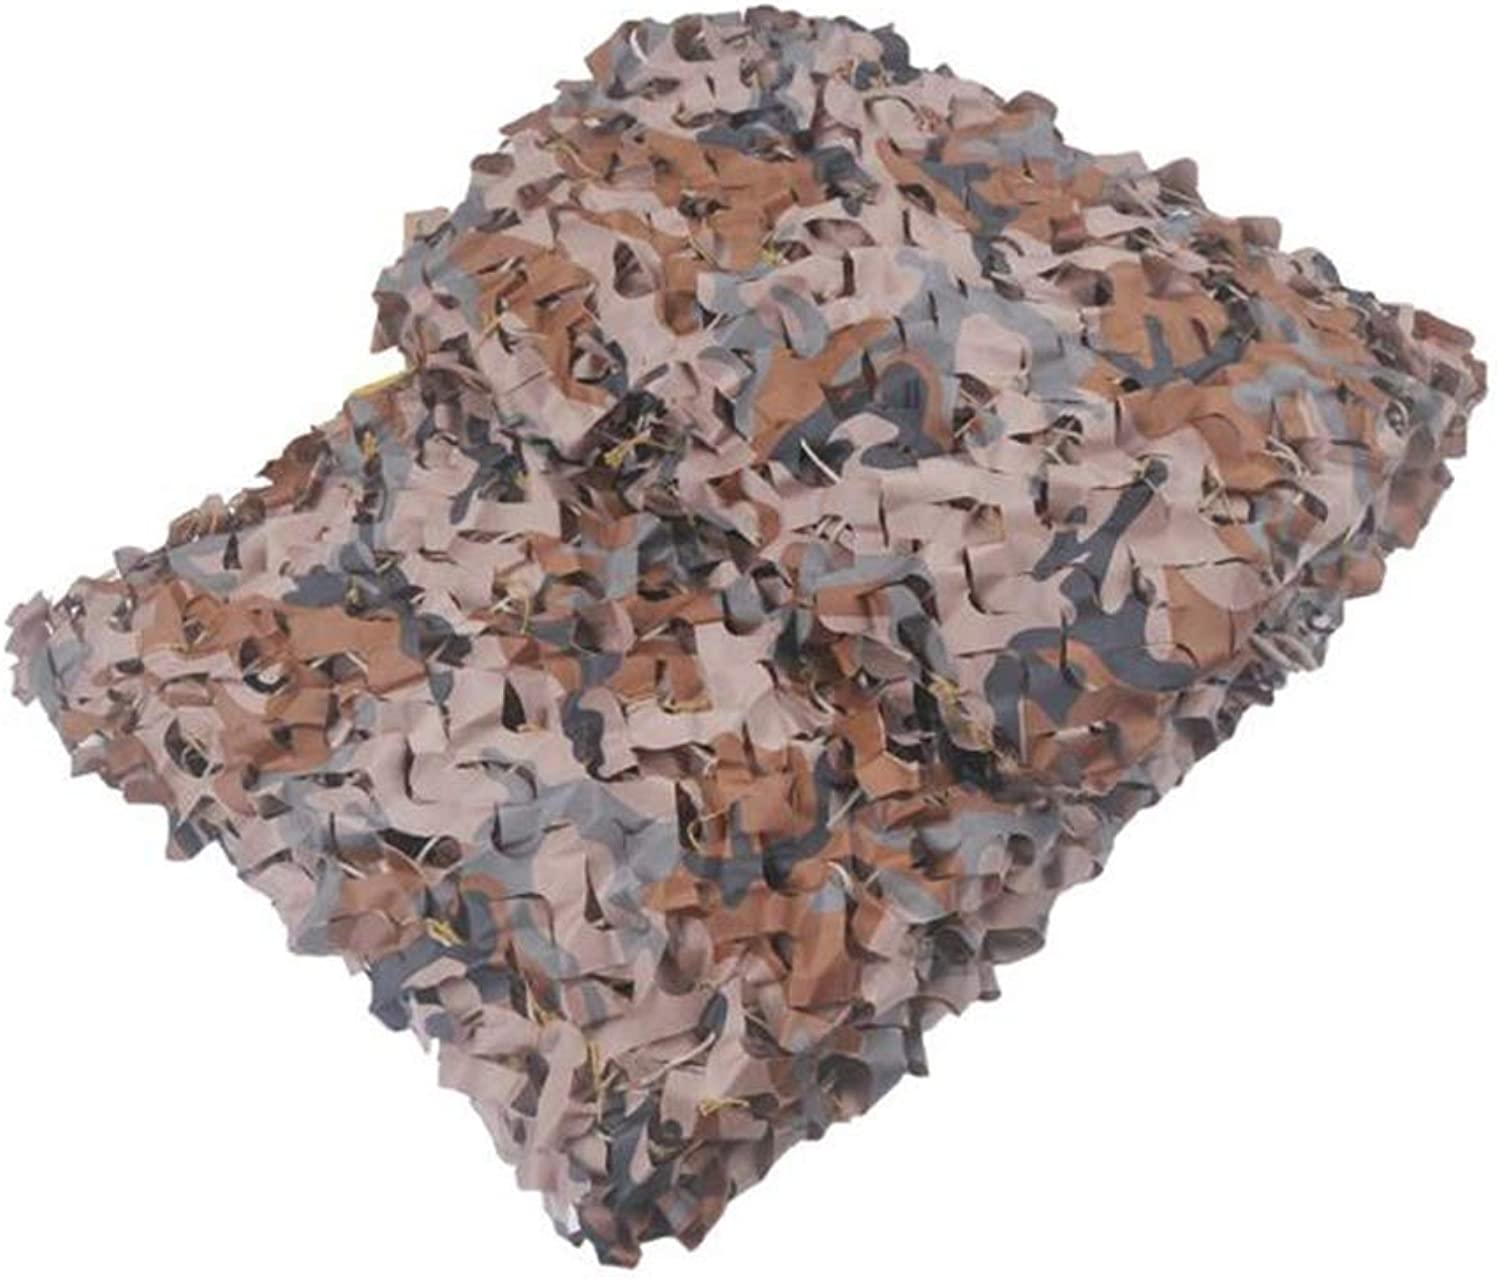 Desert Camouflage Net Air Defense Camouflage Camouflage Leather Camping Camping Photography Party Decoration Hidden Camp Shelter Tent Camouflage Cover (1.5  2m) (Size   3  6m)